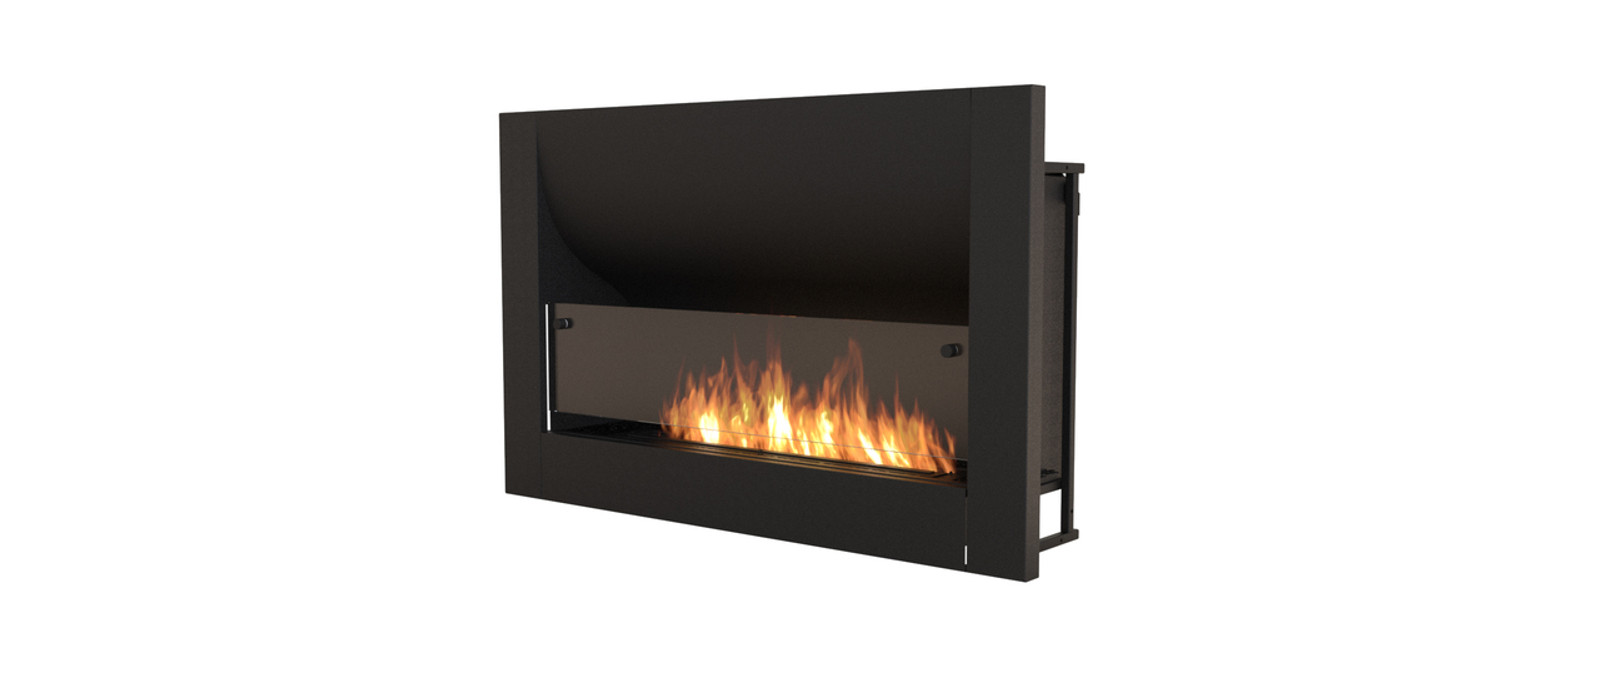 Firebox 1100CV (Curved series)